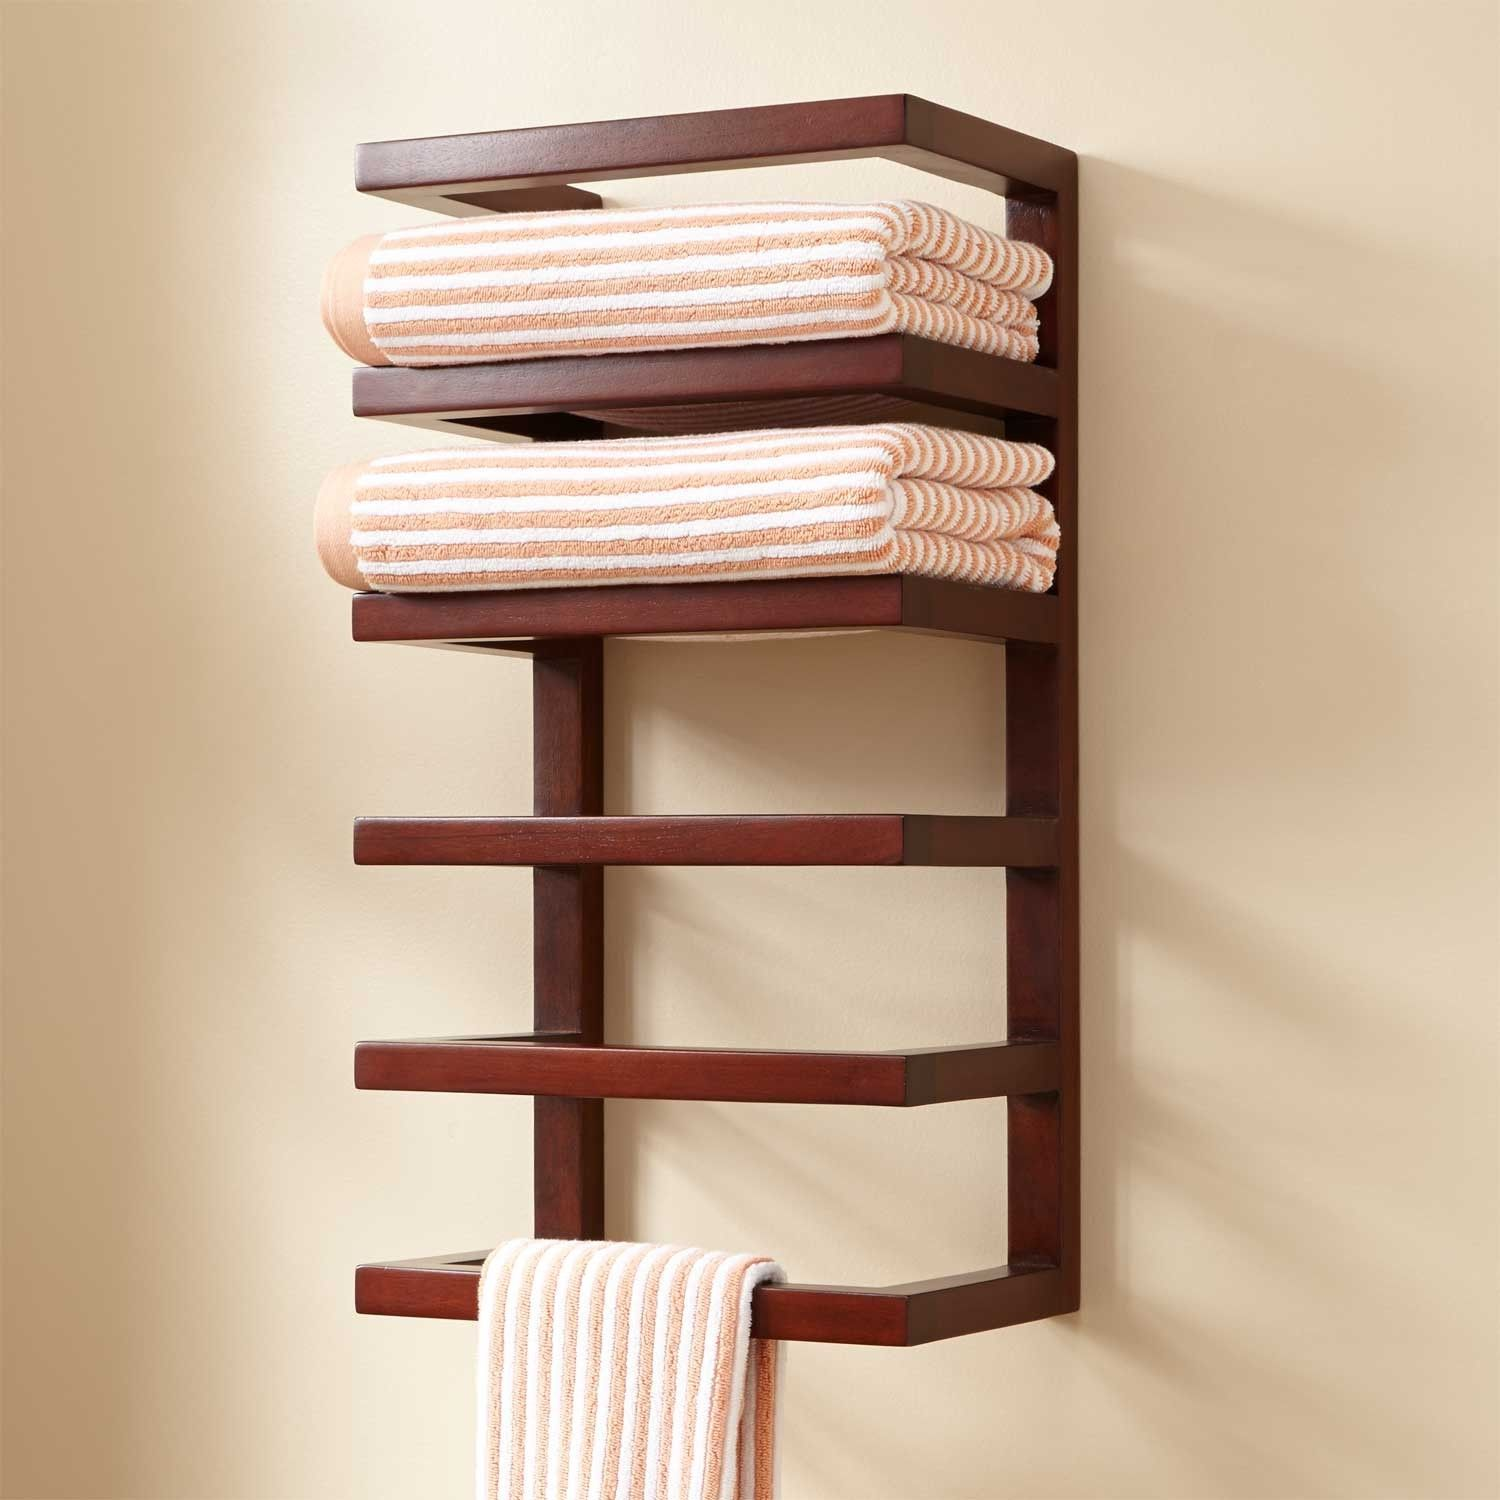 Displaying bathroom towels ideas - Mahogany Hanging Towel Rack Towel Holders Bathroom Accessories Bathroom